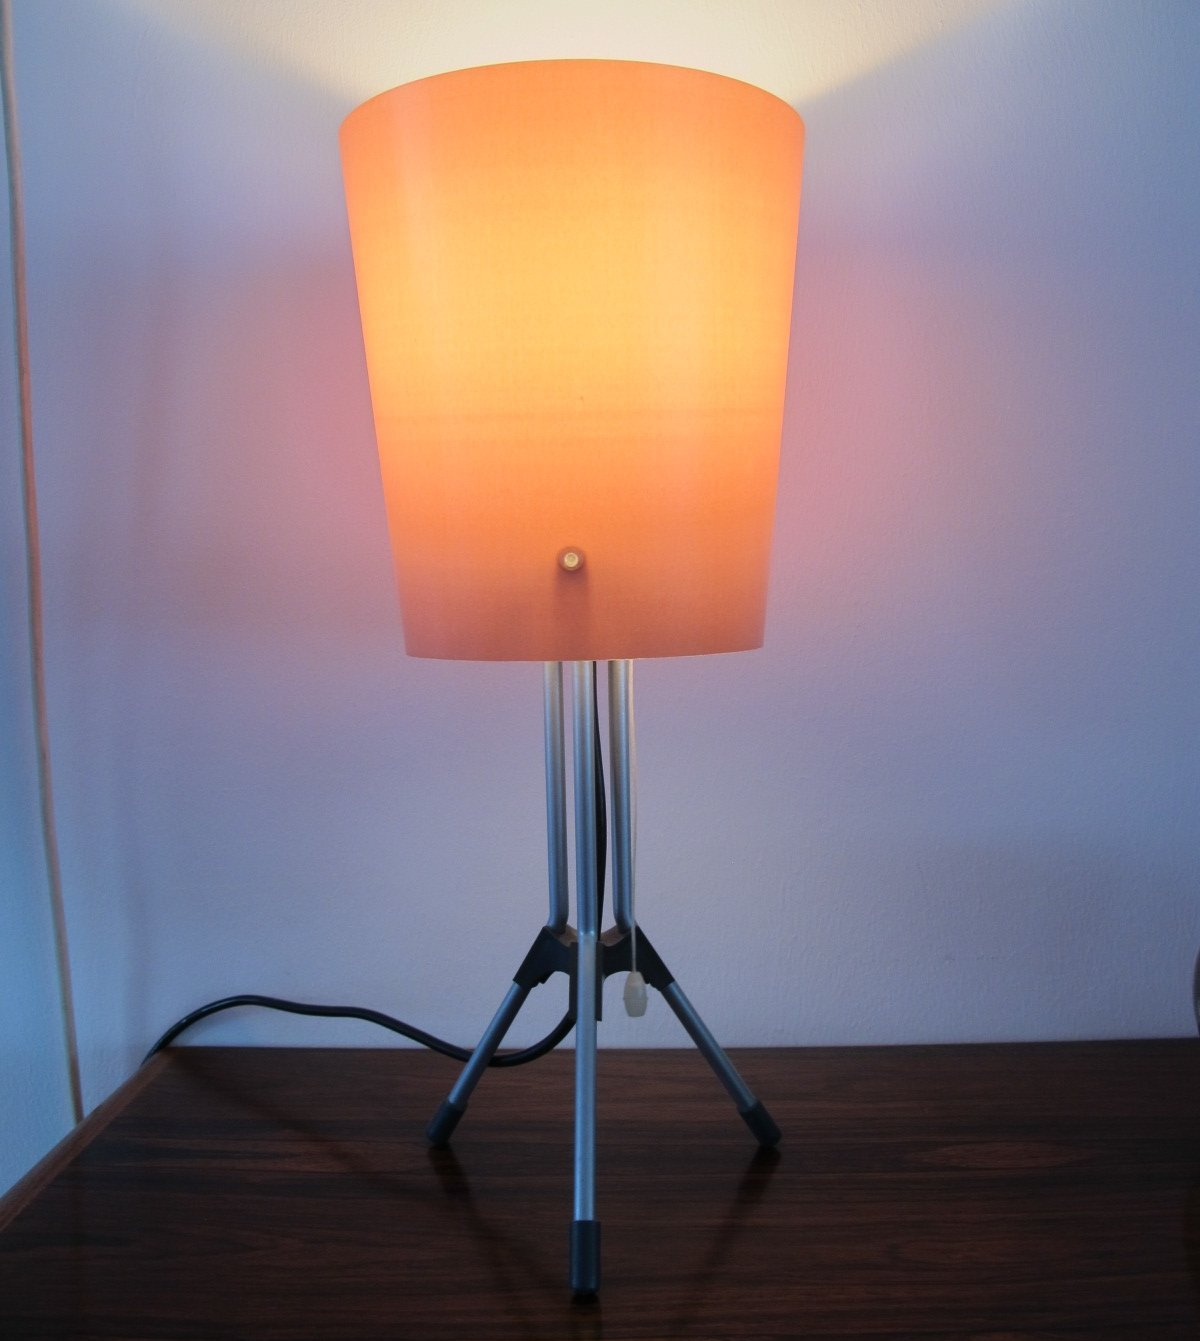 Sensational Desk Lamp By Rodolfo Dordoni For Artemide 1970S 60905 Gmtry Best Dining Table And Chair Ideas Images Gmtryco